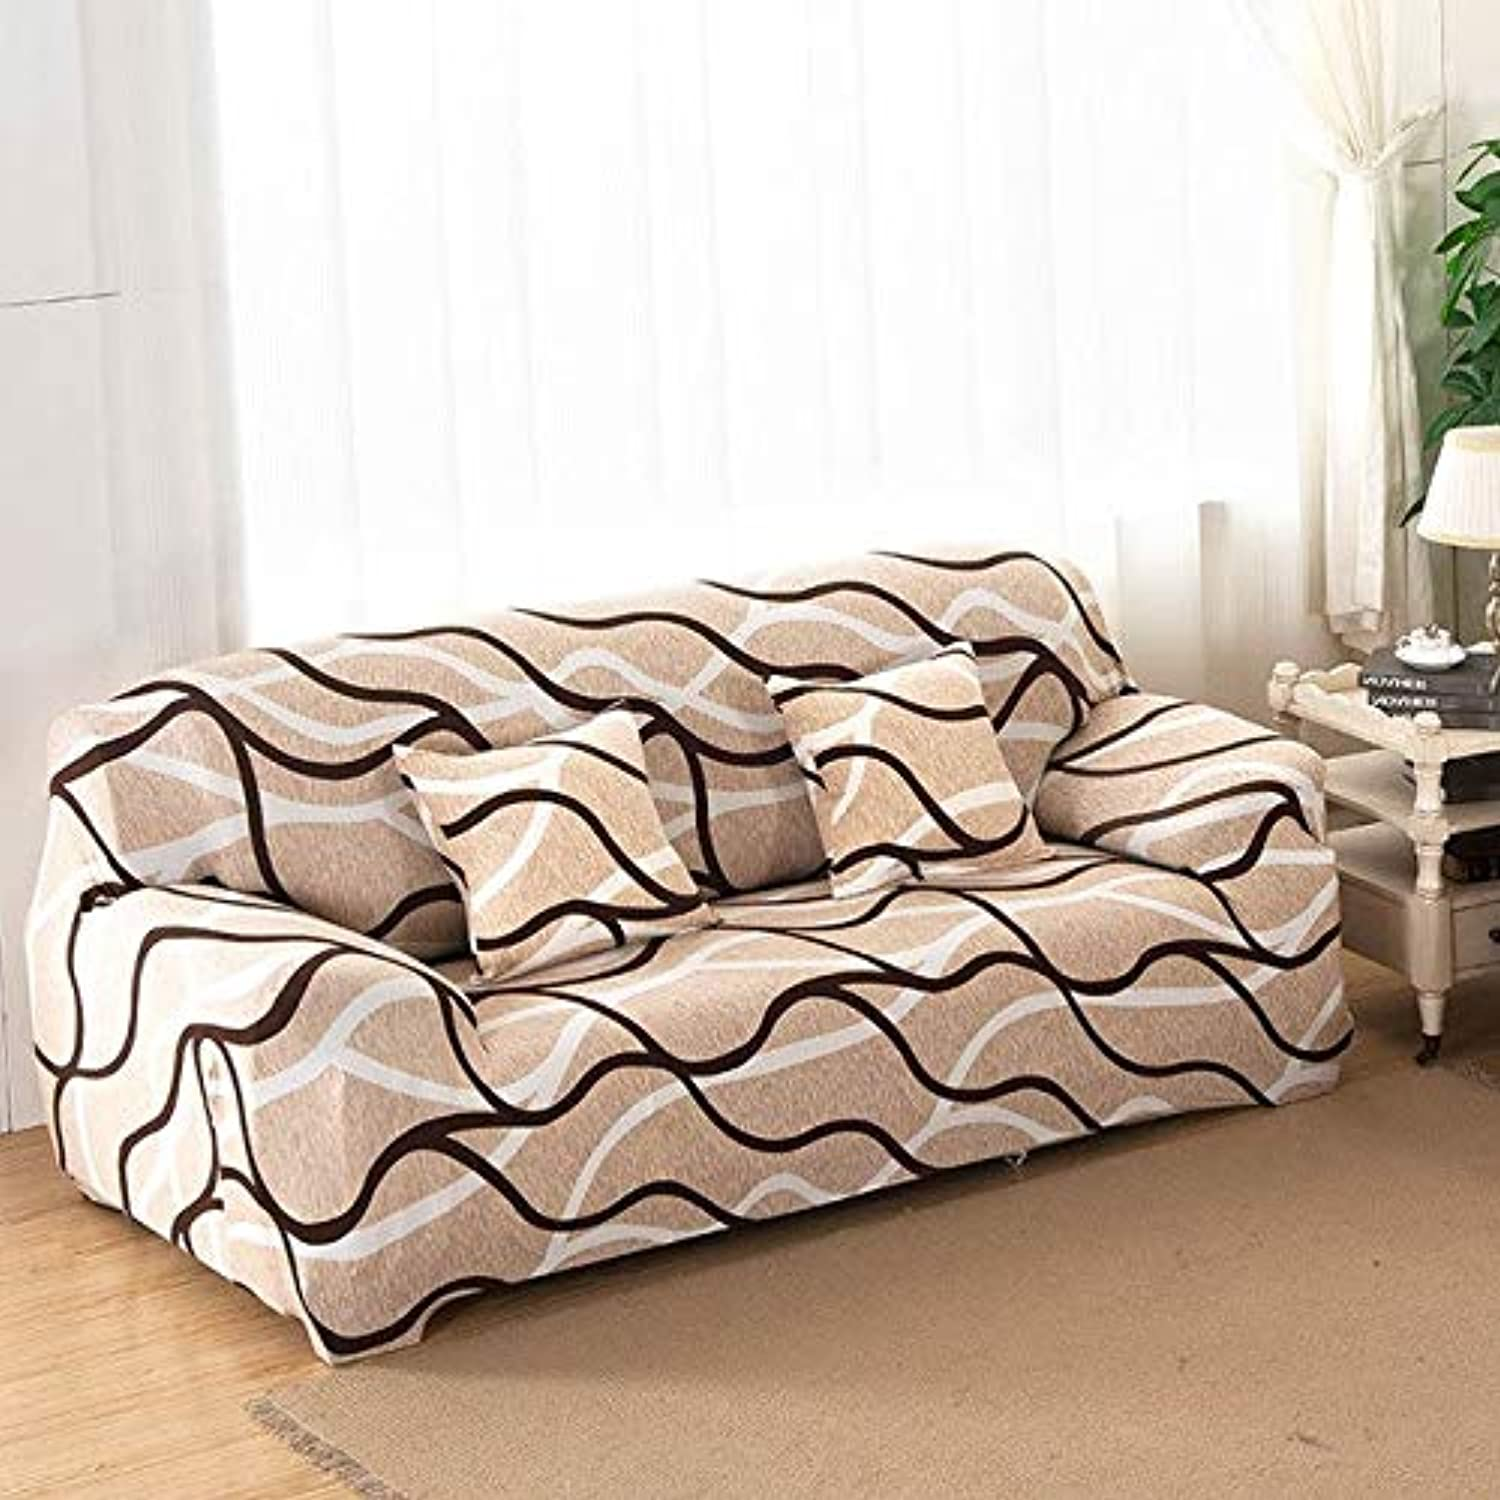 Universal Three Seater Sofa Cover for Lig Room Tight Seat Cover Slipcover Stretch Couch Cover on The Corner Sofa Blanket   6, Single Seater